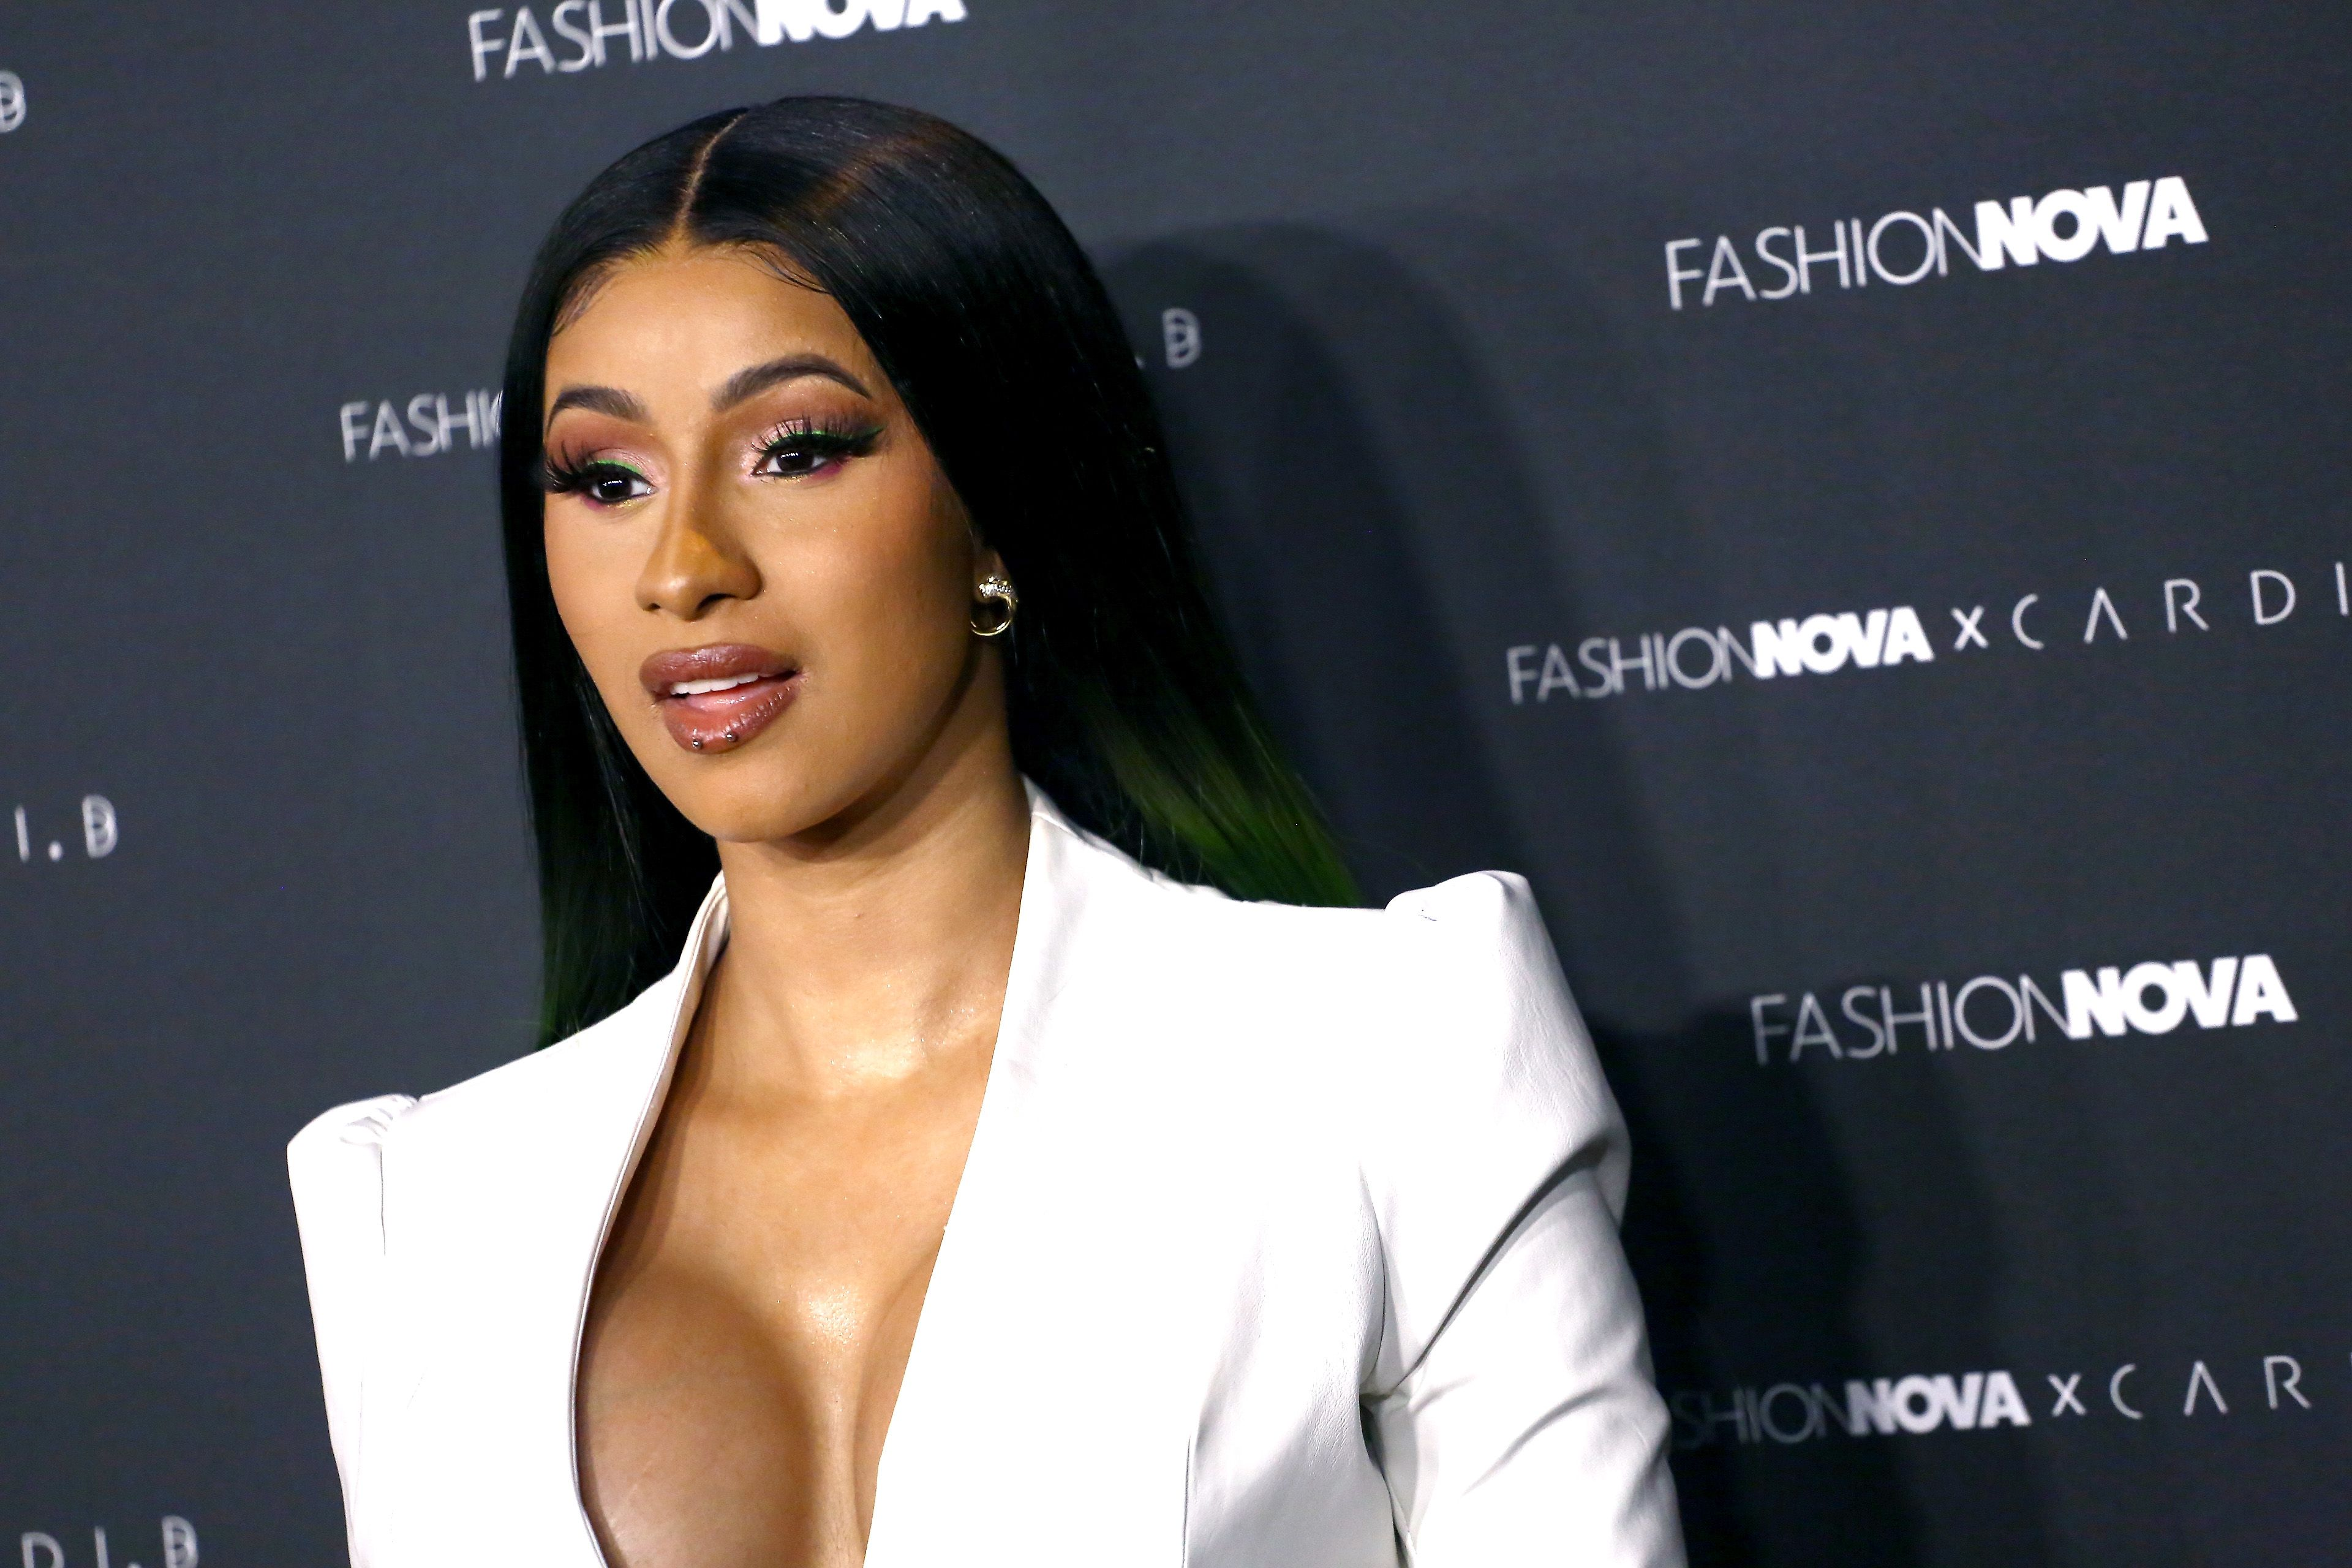 Cardi B with her mouth slightly open